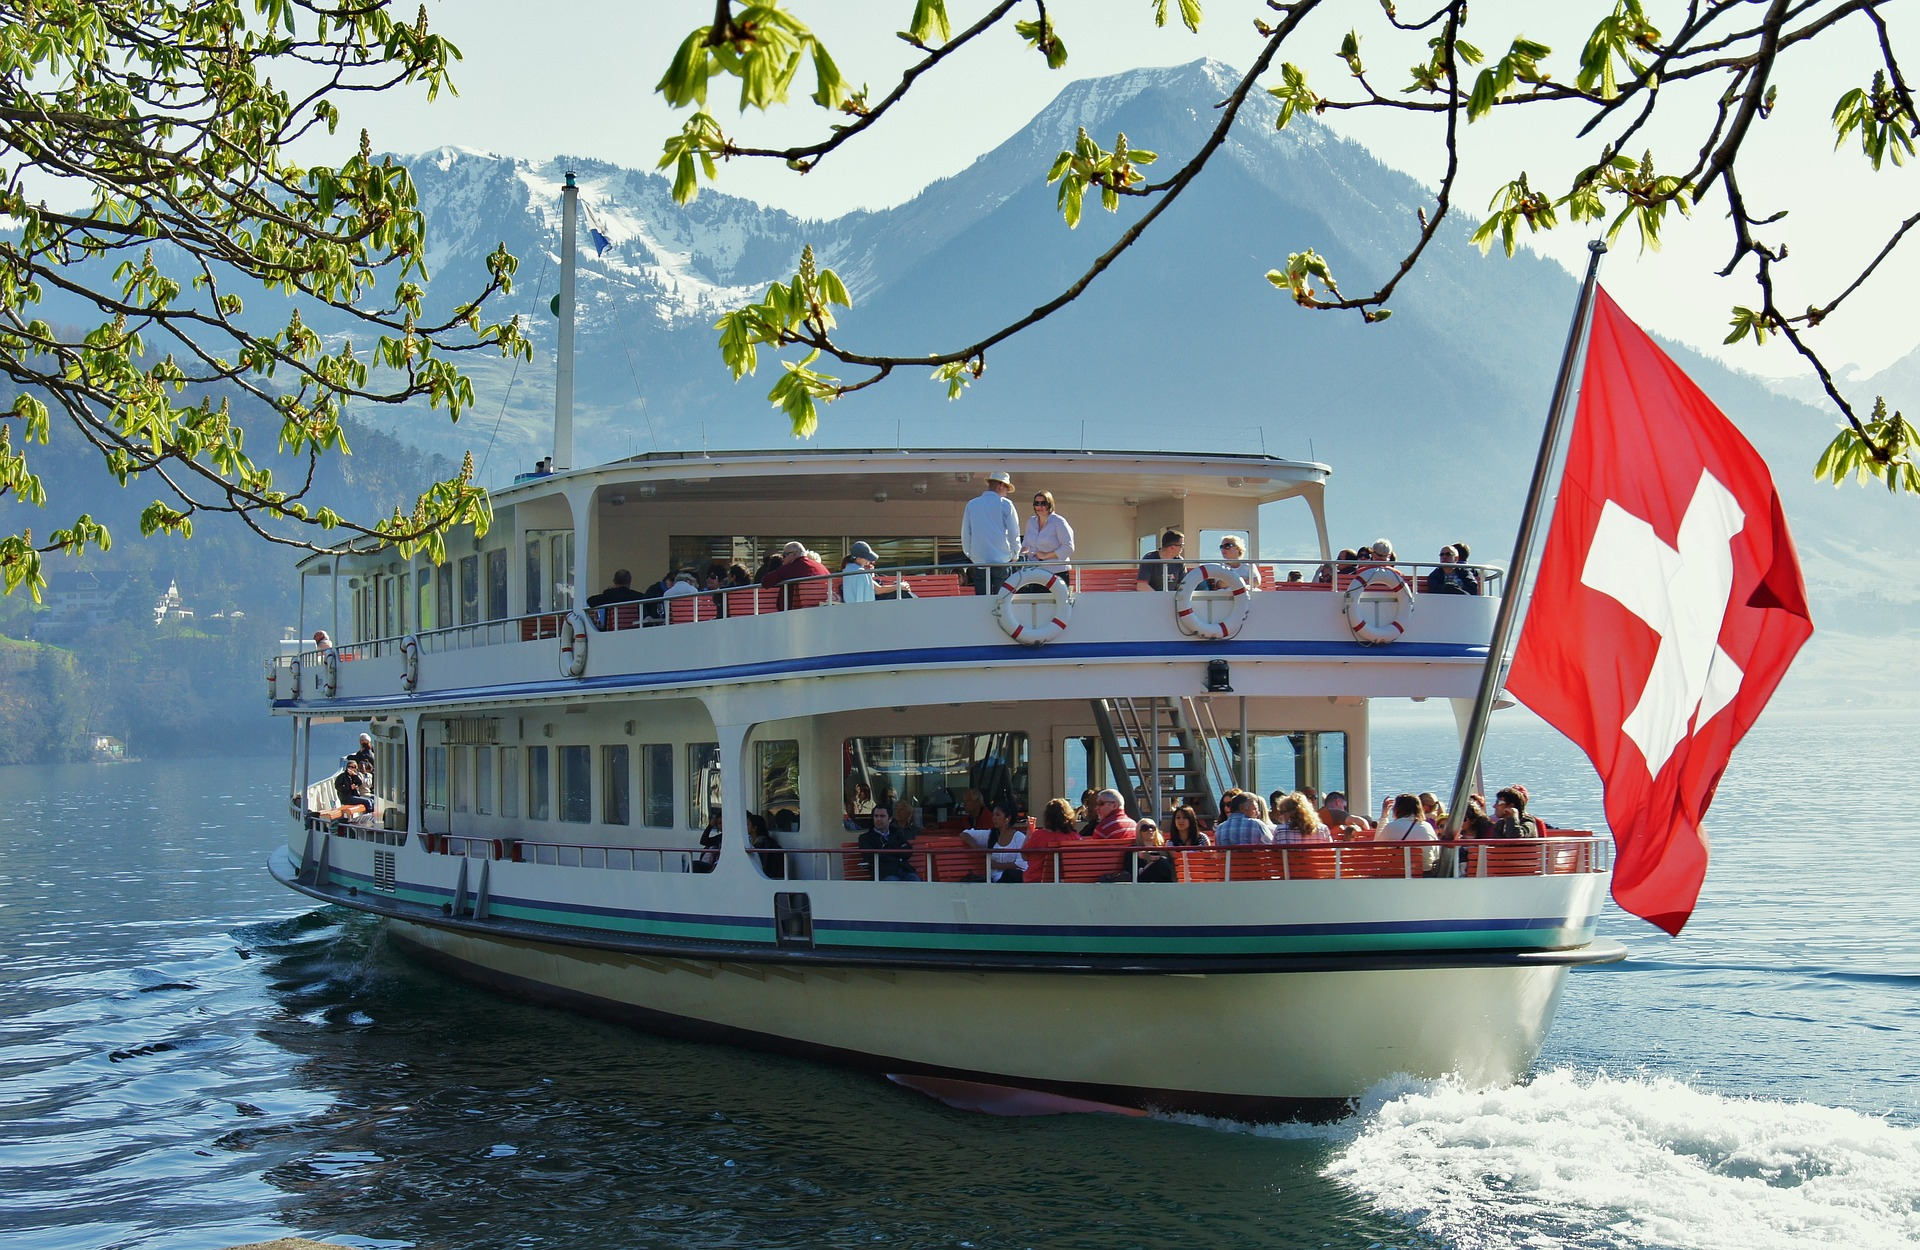 Luxury in Switzerland: quality of life